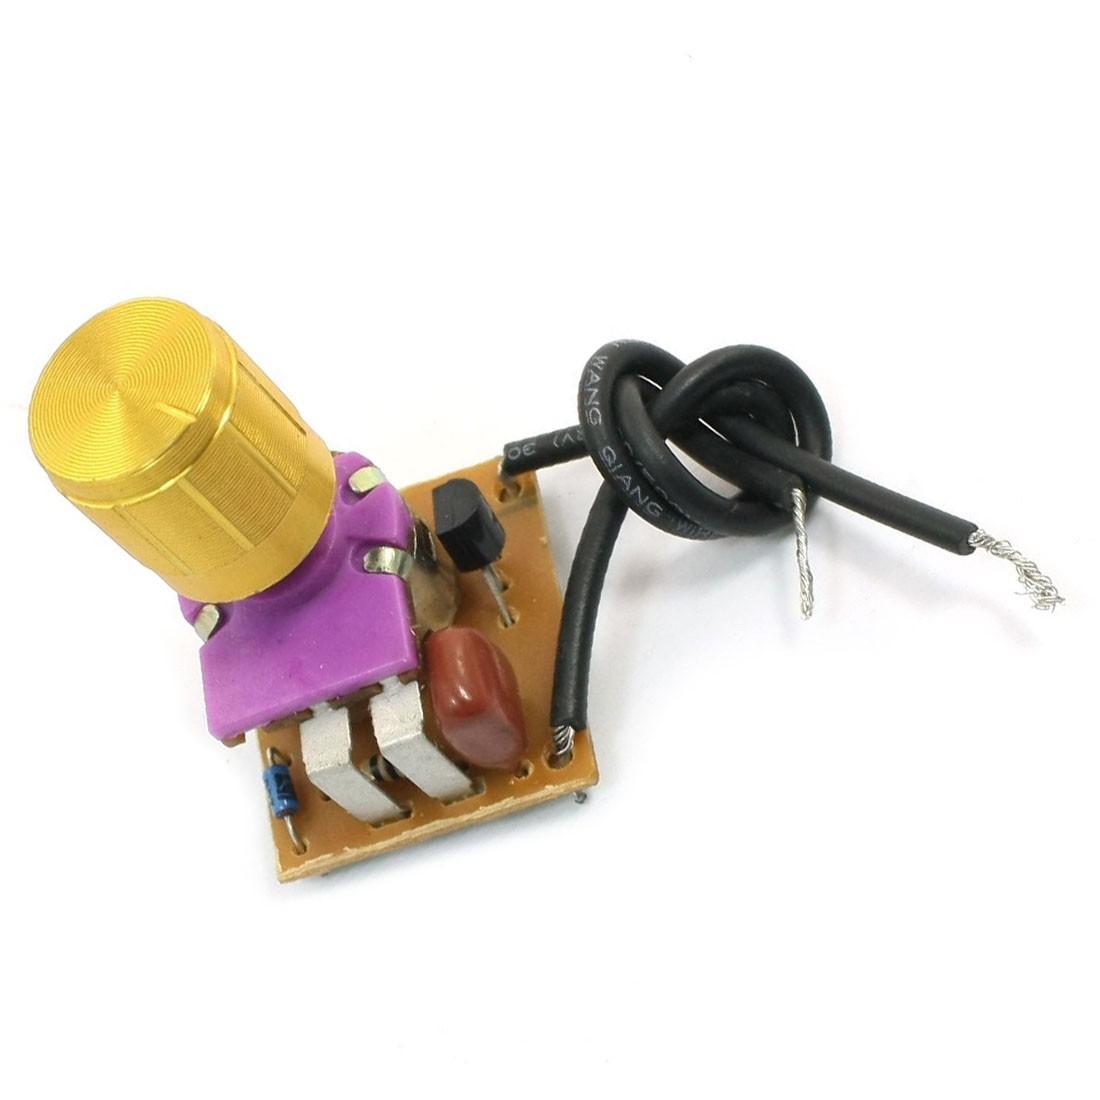 Jfbl 2x hot table lamp full range dimmer gold tone rotary switch 2 jfbl 2x hot table lamp full range dimmer gold tone rotary switch 2 wire connector in connectors from lights lighting on aliexpress alibaba group greentooth Choice Image